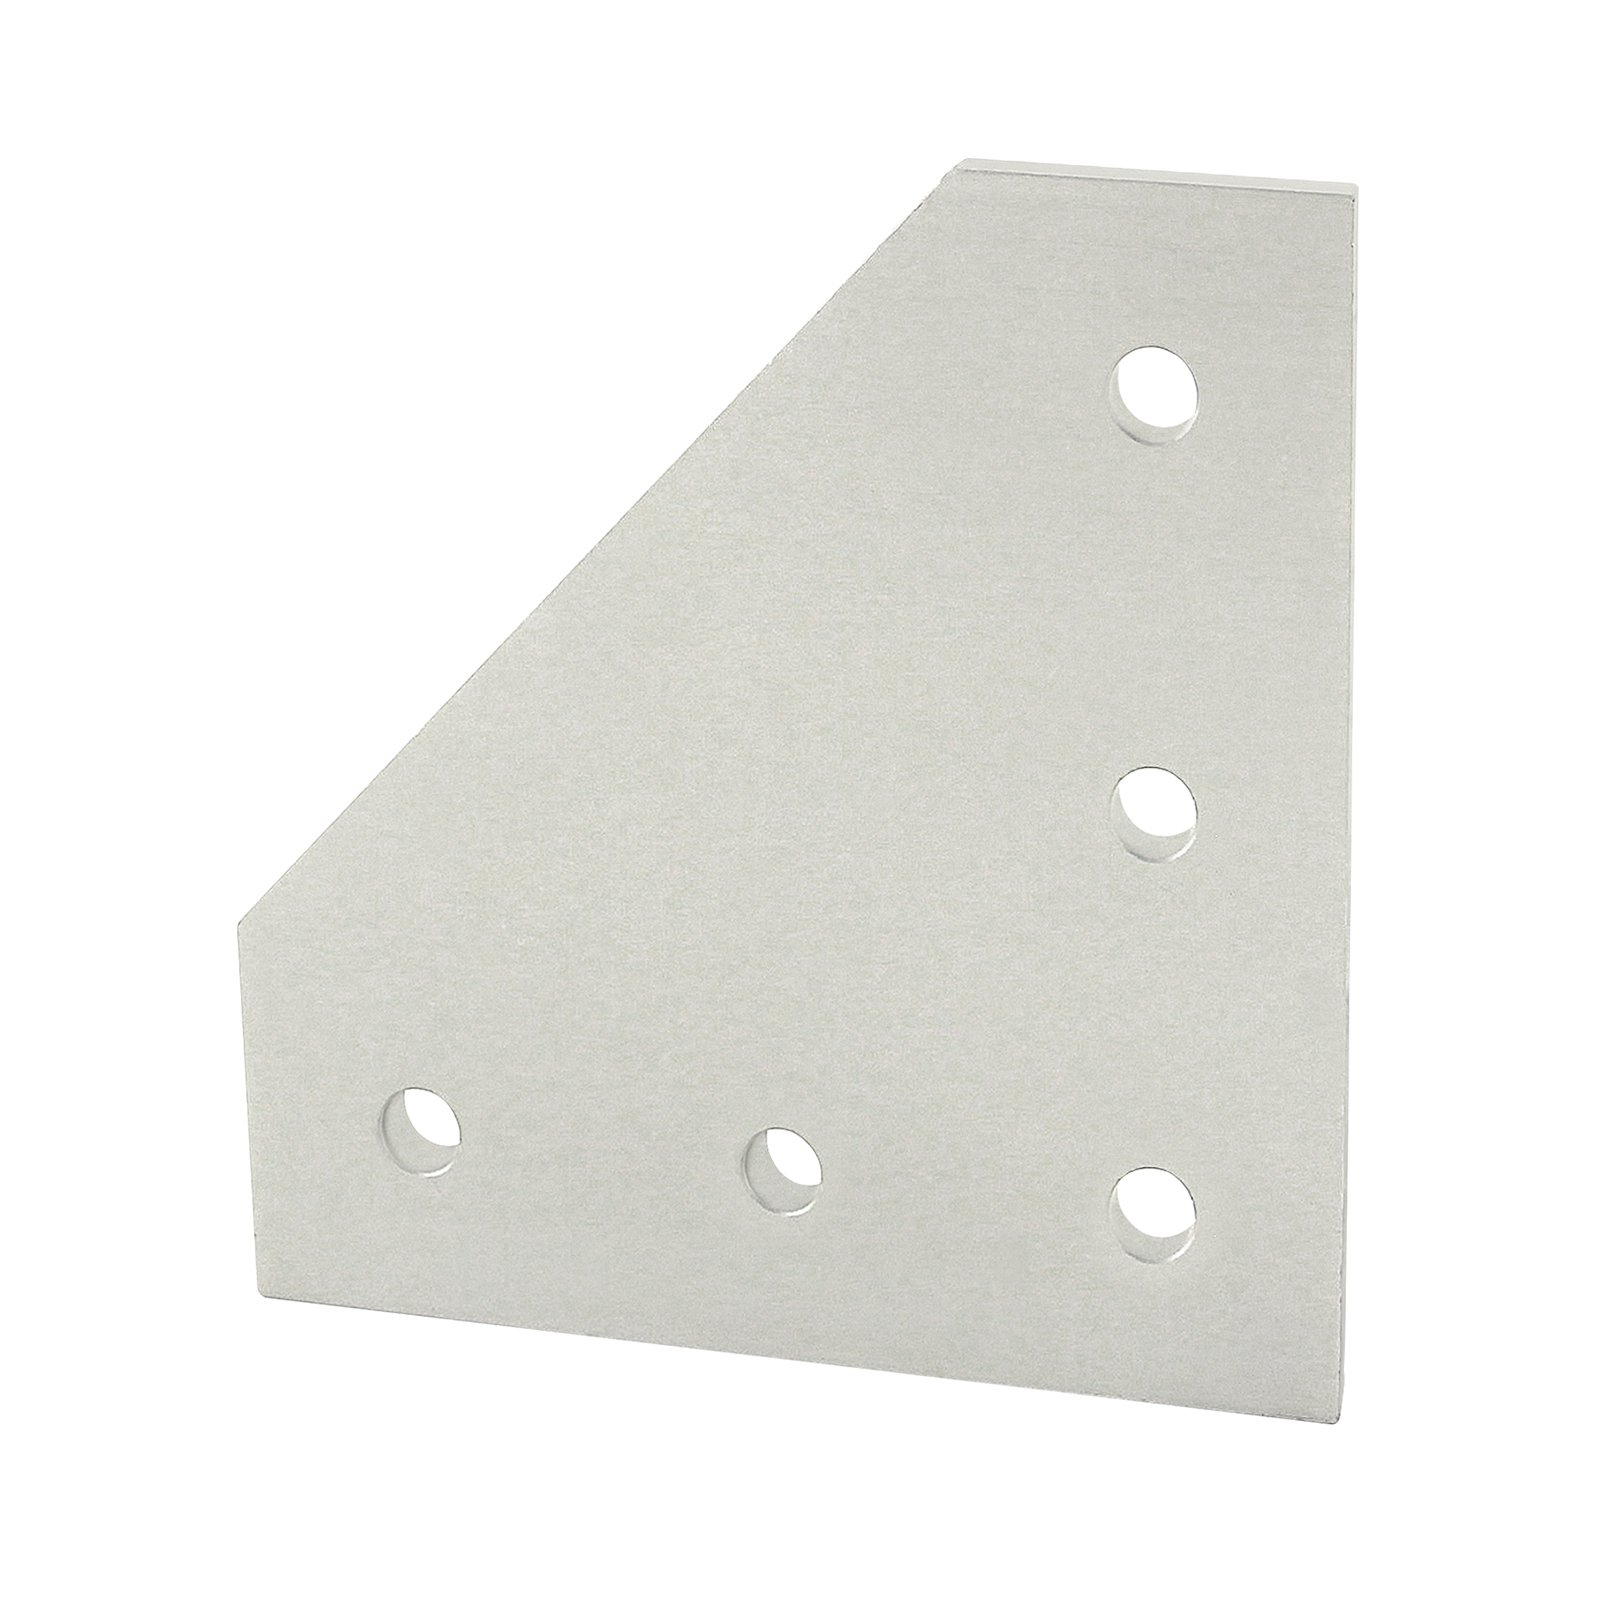 80/20 Inc., 4351, 15 Series, 5-Hole 90 Degree Joining Plate by 80/20 Inc